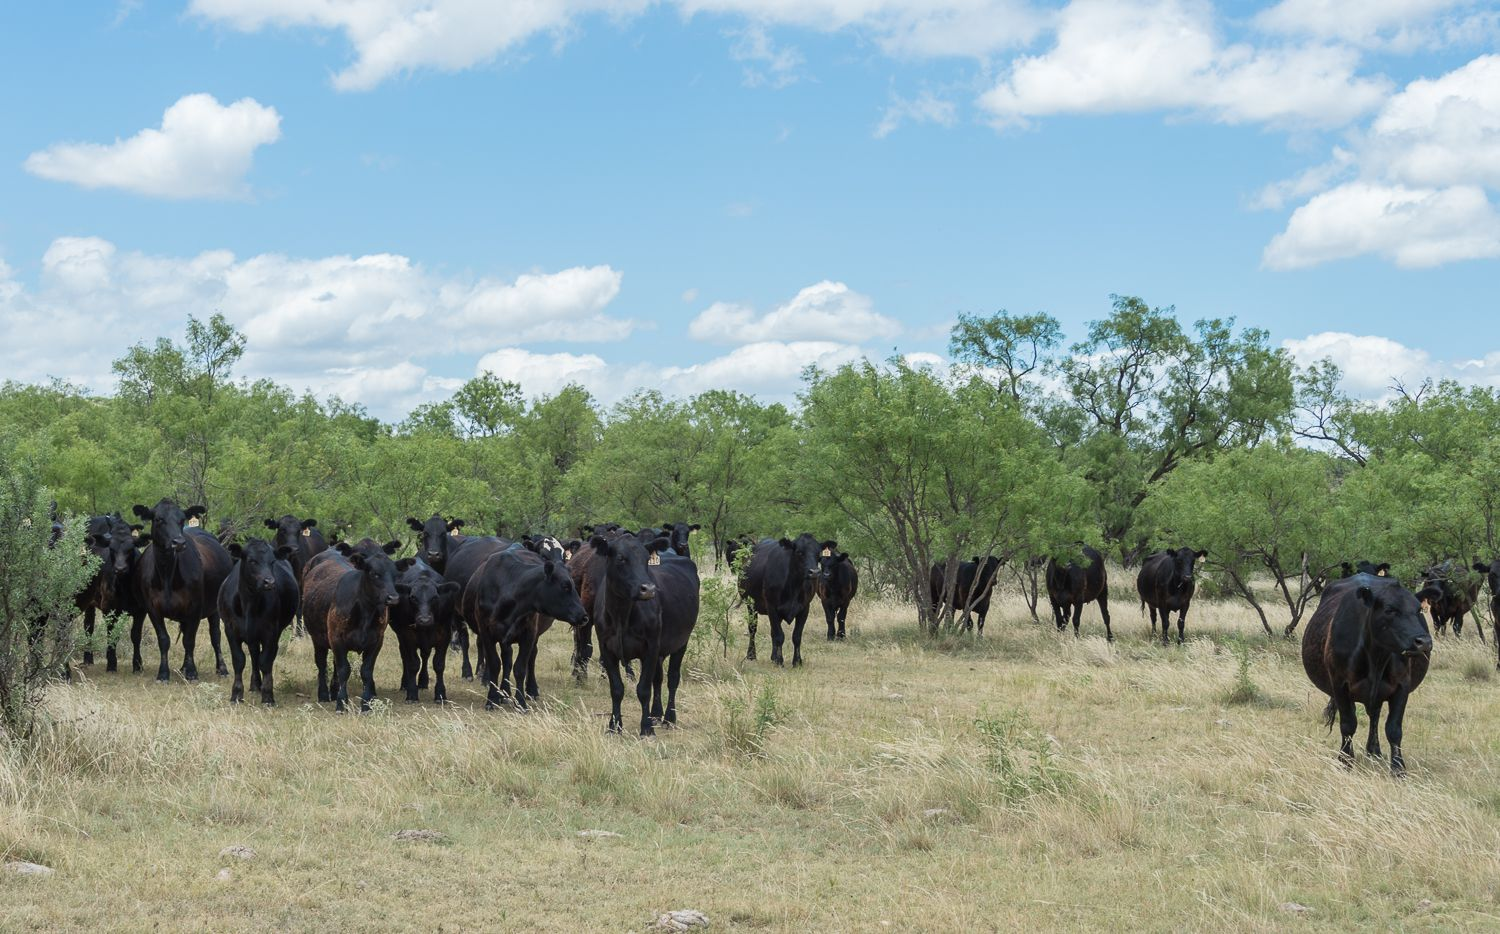 The Comanche Crest Ranch is in Throckmorton County west of Fort Worth.